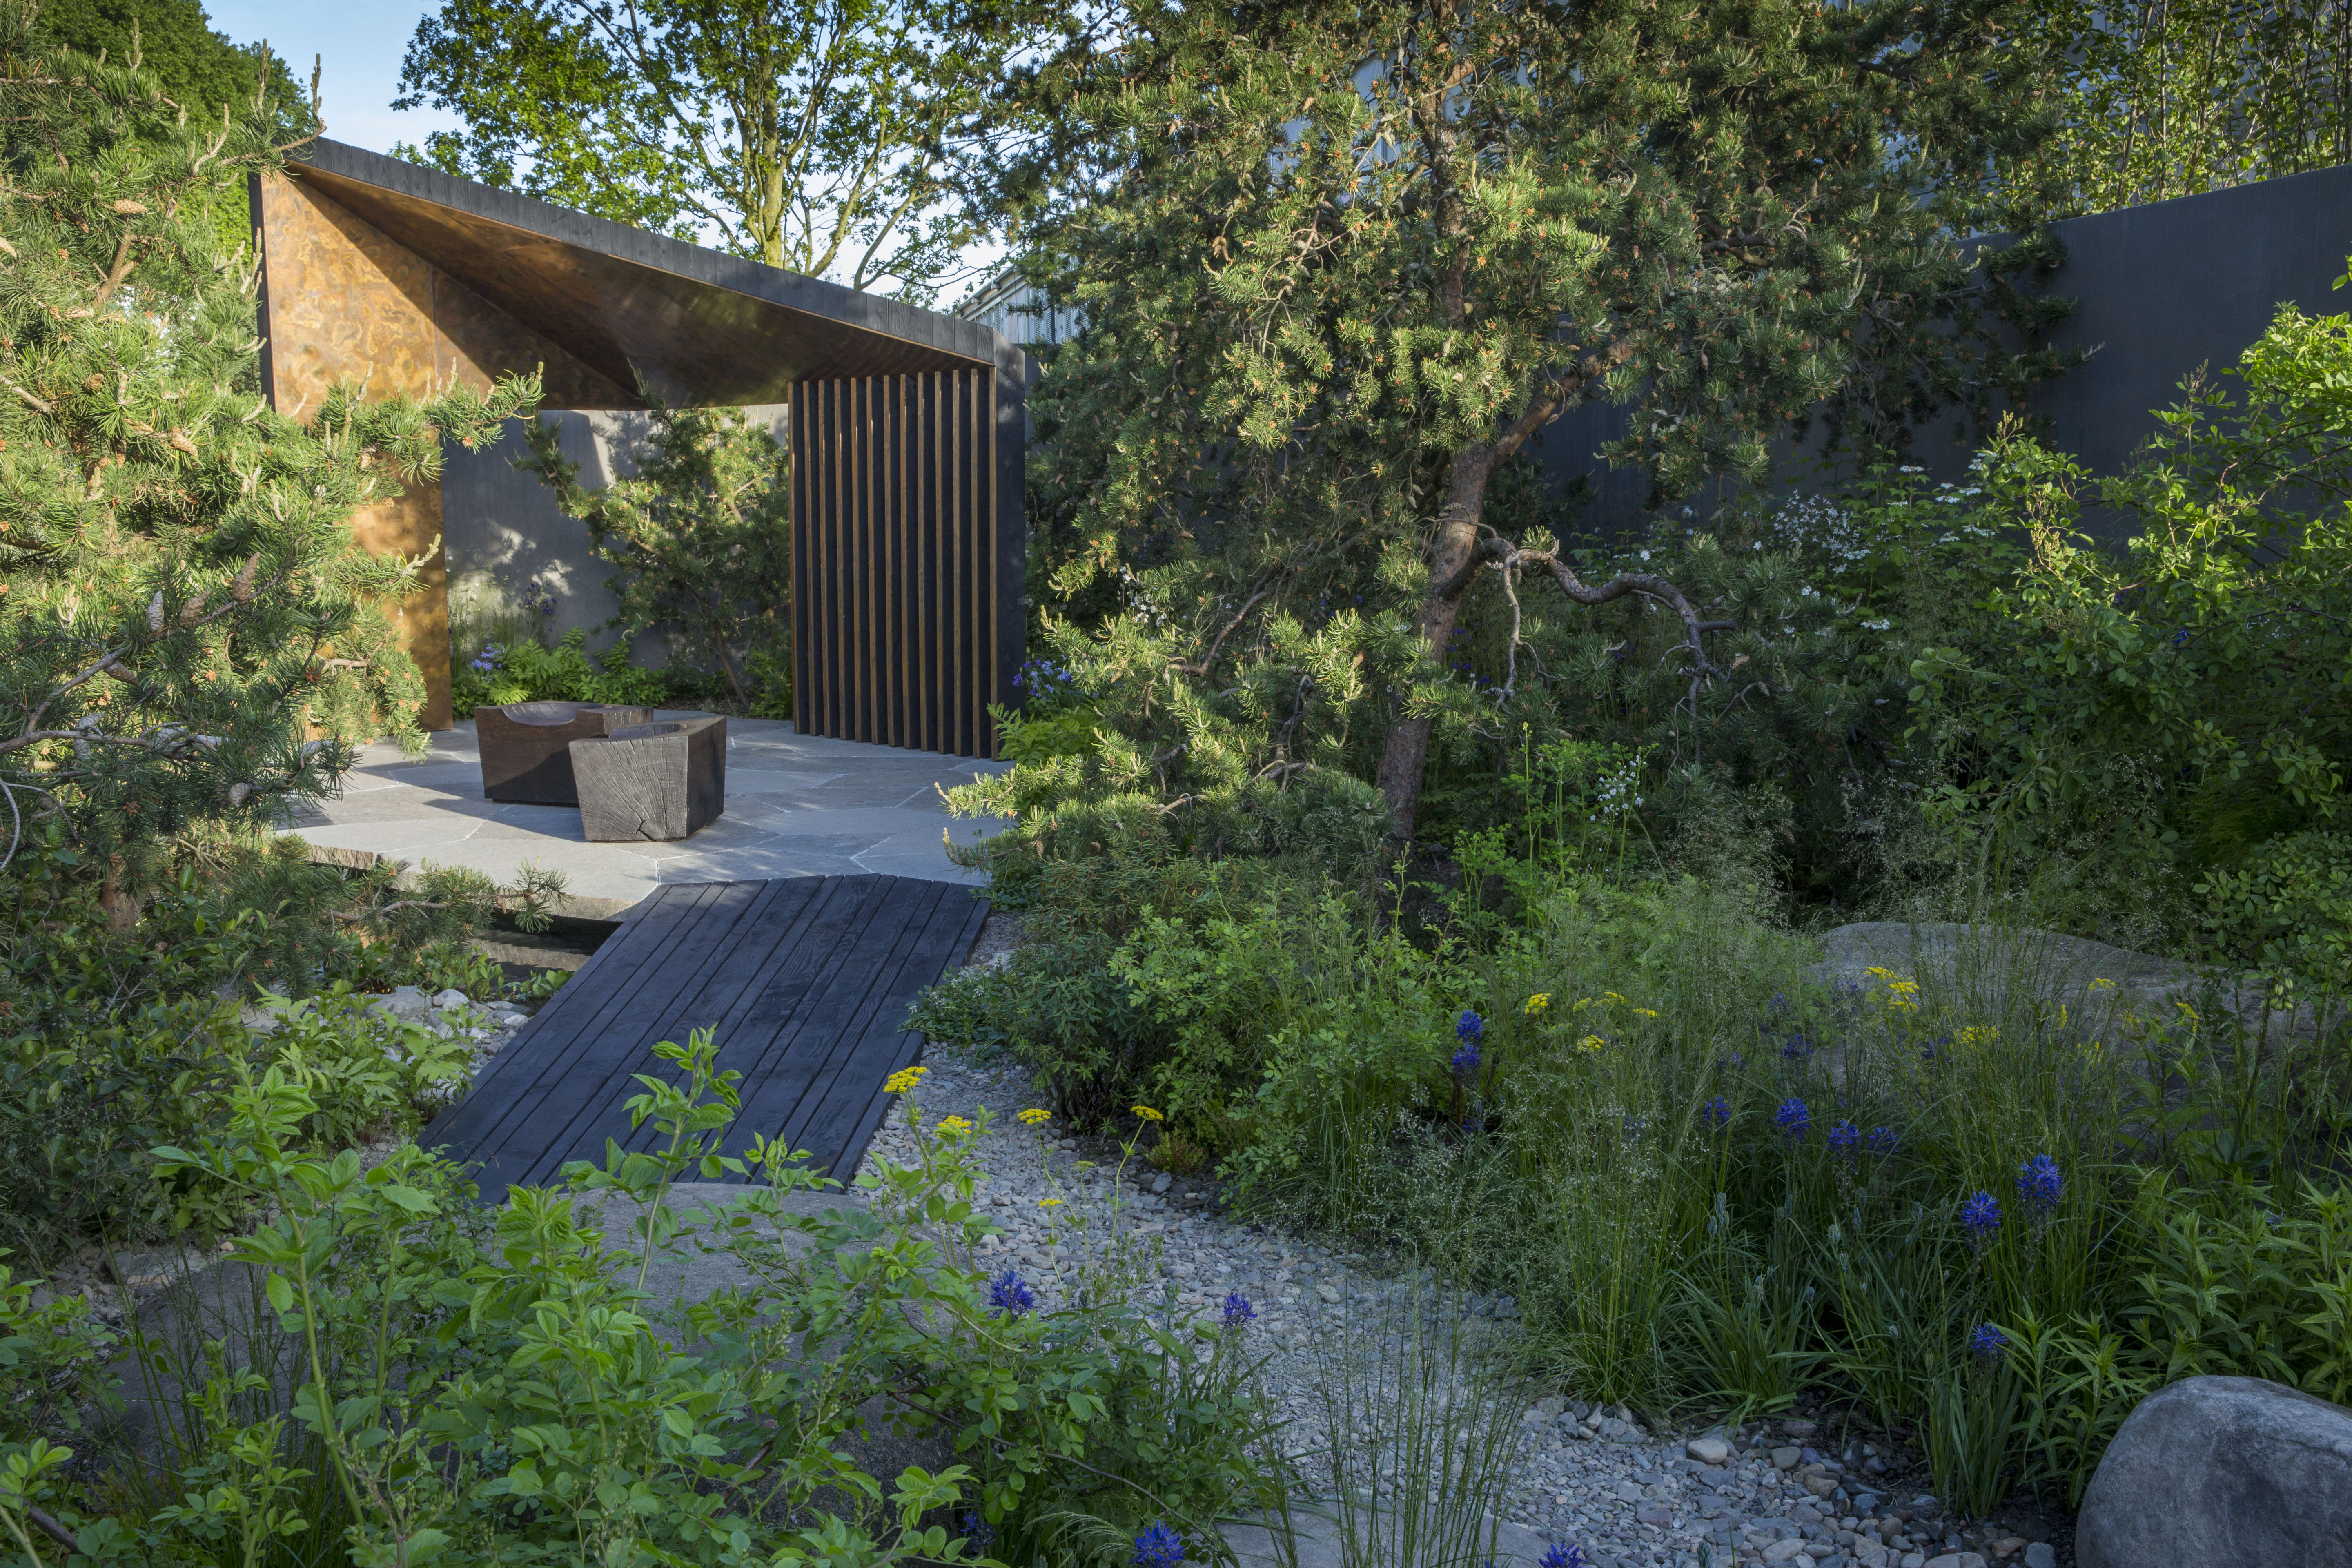 Following Its Starring Role At The RHS Chelsea Flower Show 2017, The Gold  Medal Winning Royal Bank Of Canada Garden Will Find A New Home At The  Wildfowl ...